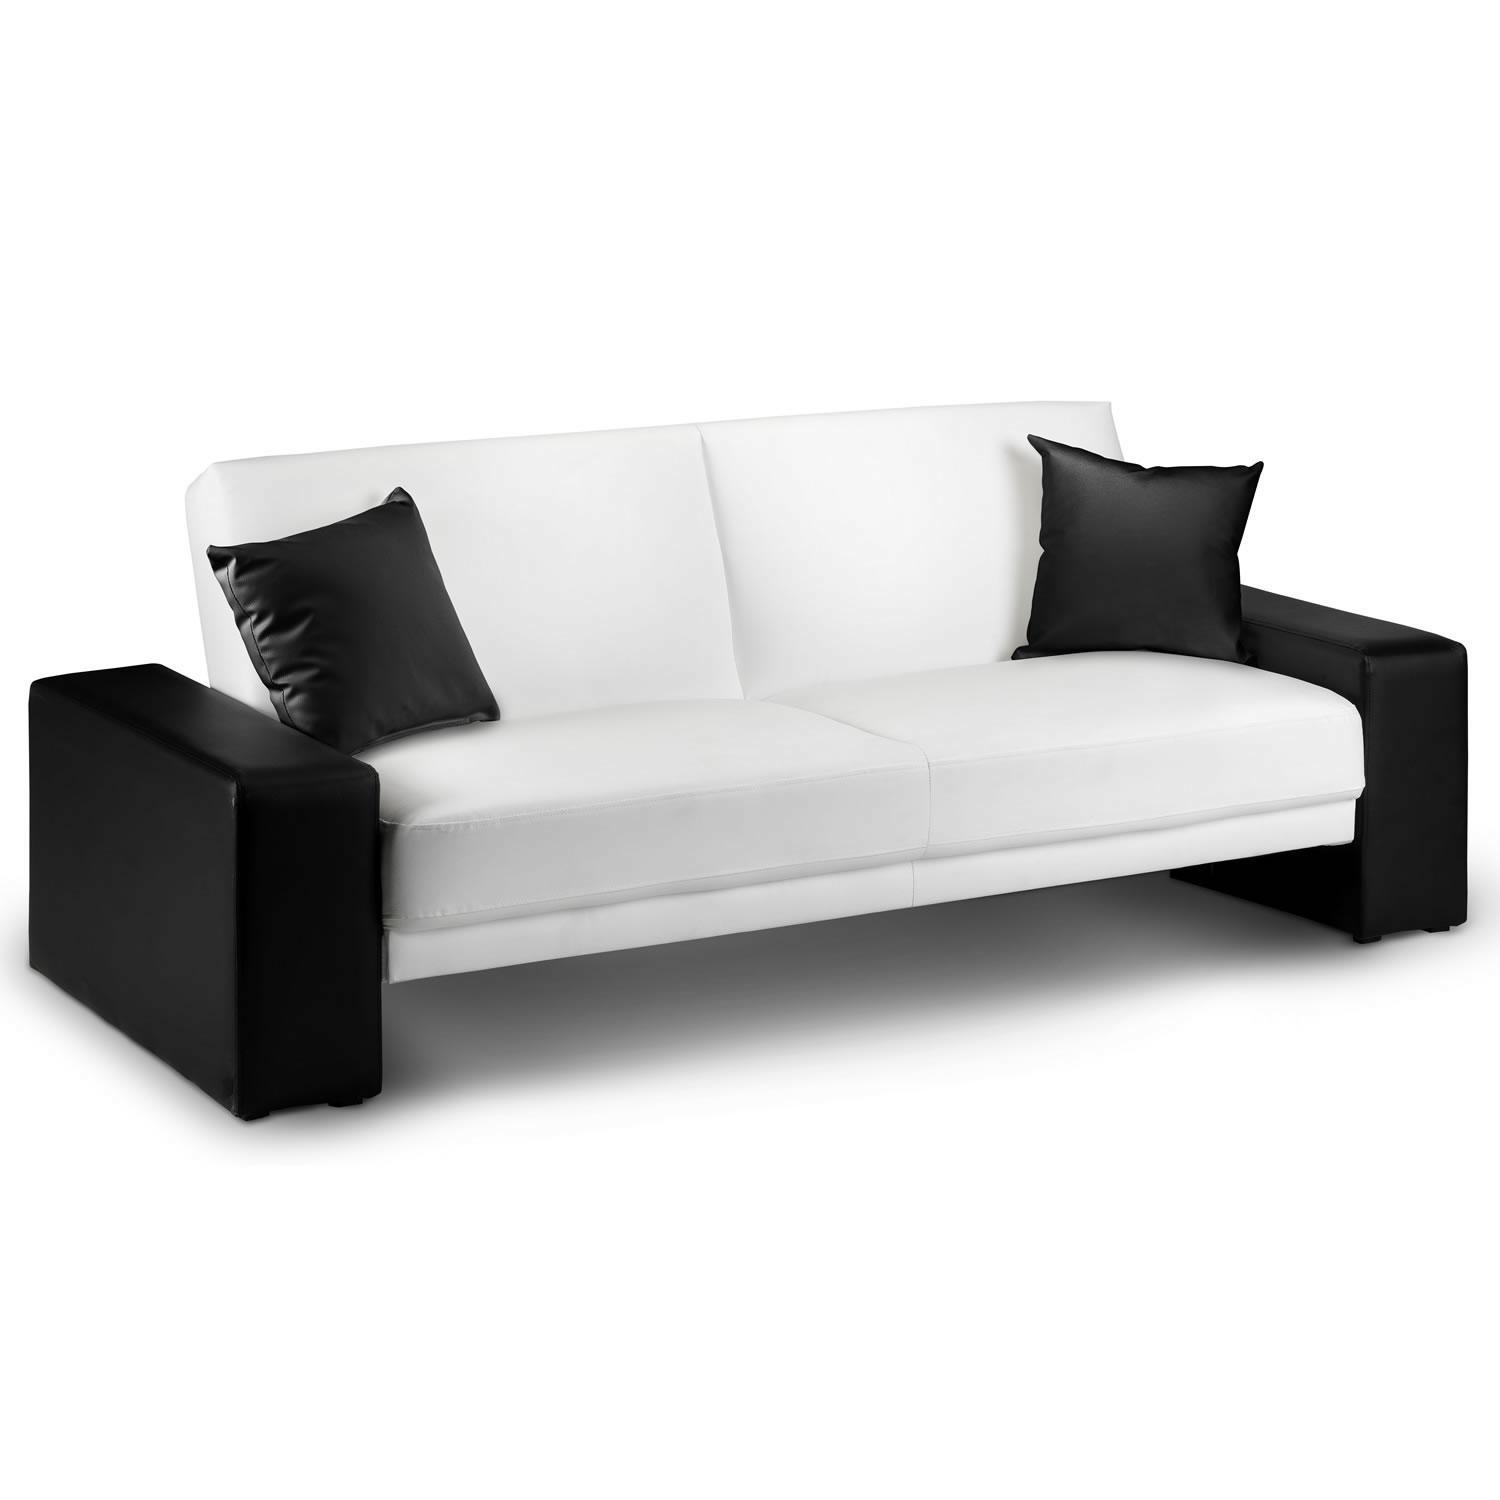 black and white leather sofa bed queen mattress replacement 20 photos sofas ideas